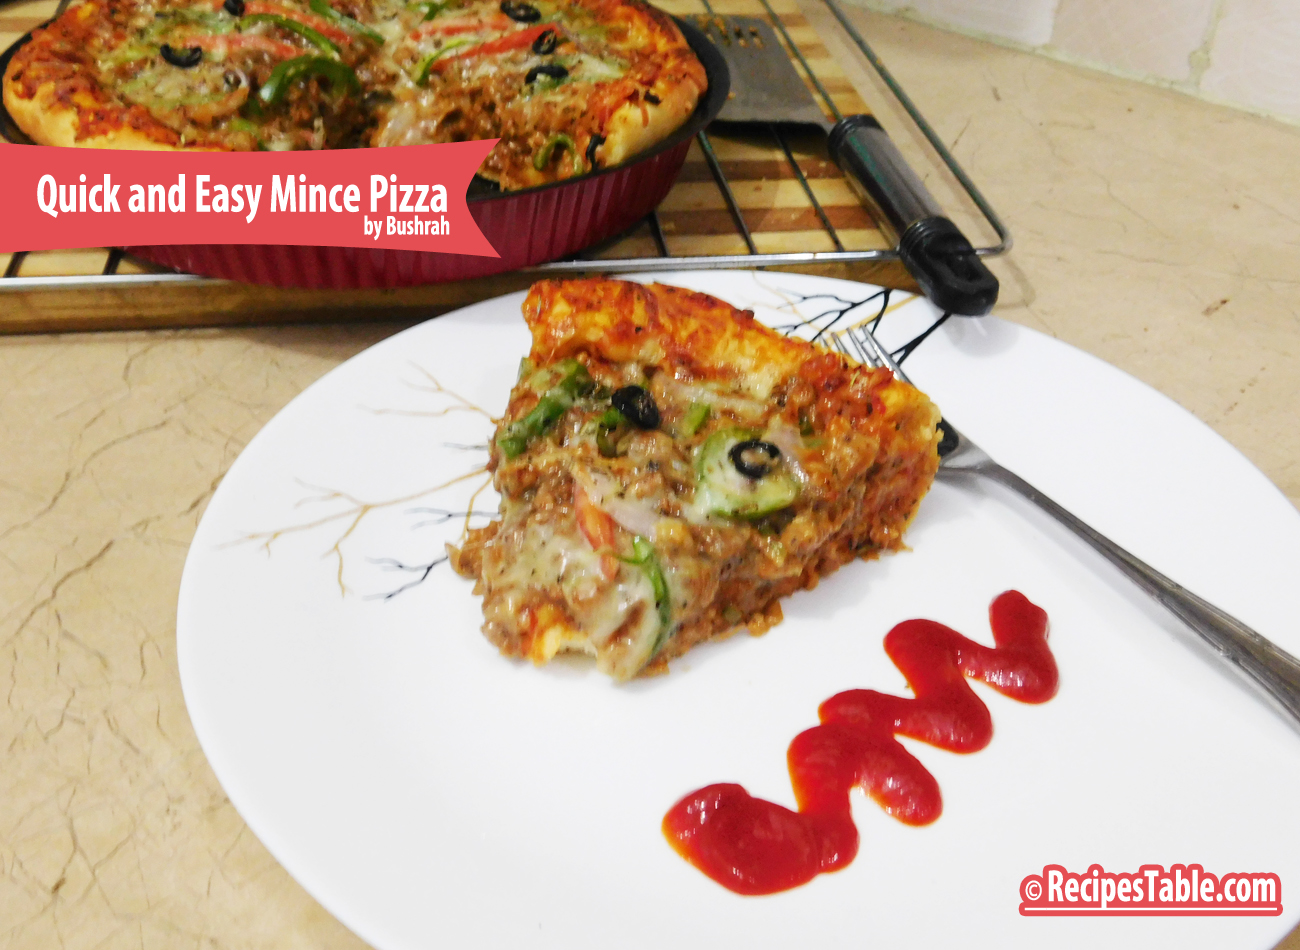 Quick and Easy Mince Pizza